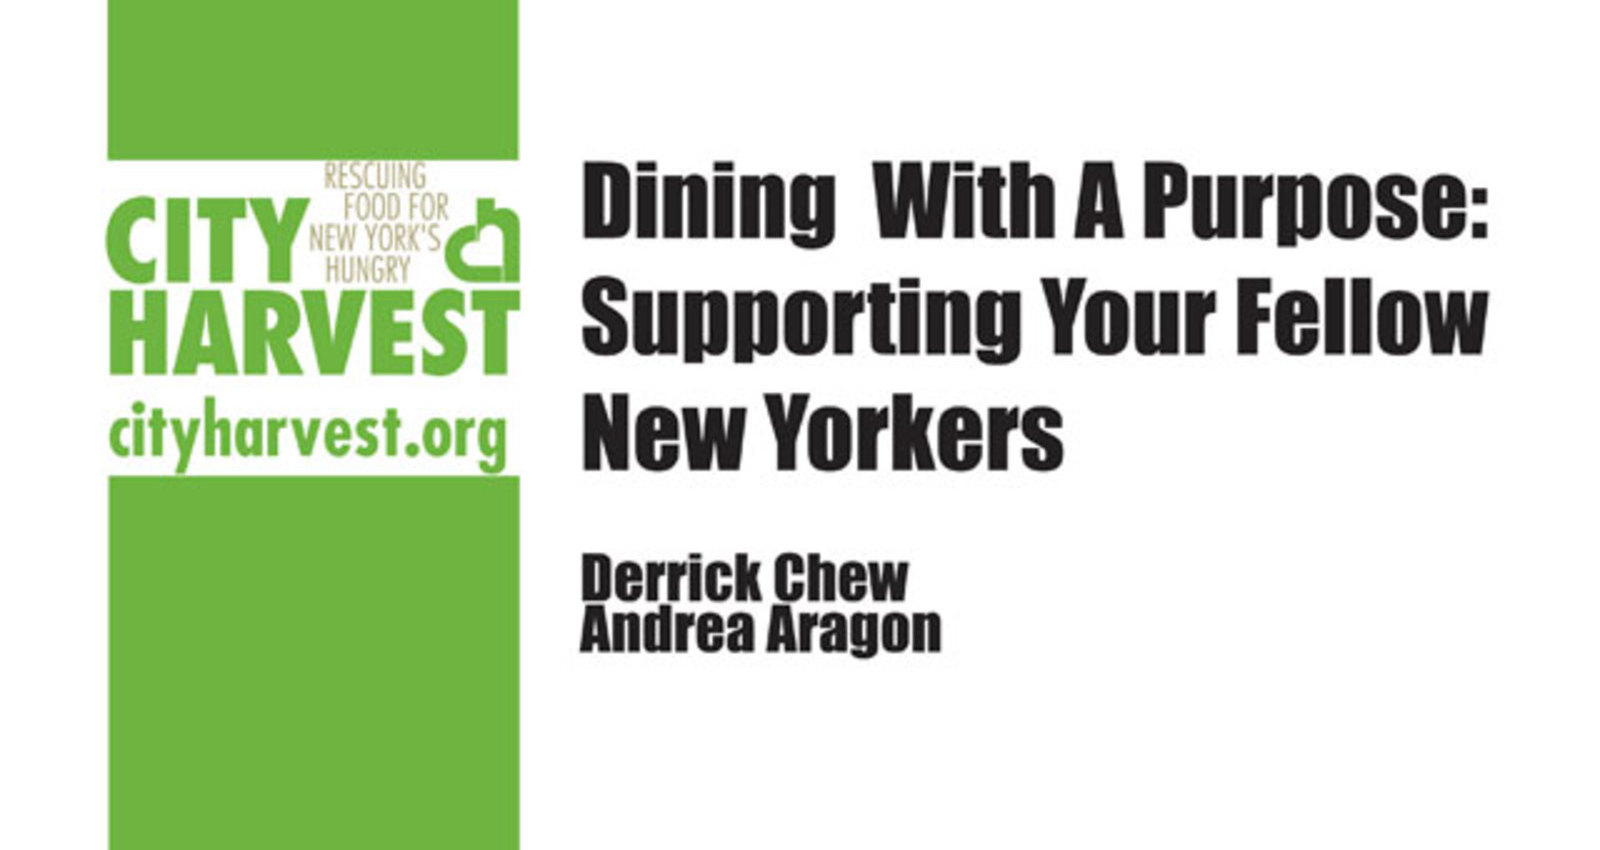 Dining With A Purpose